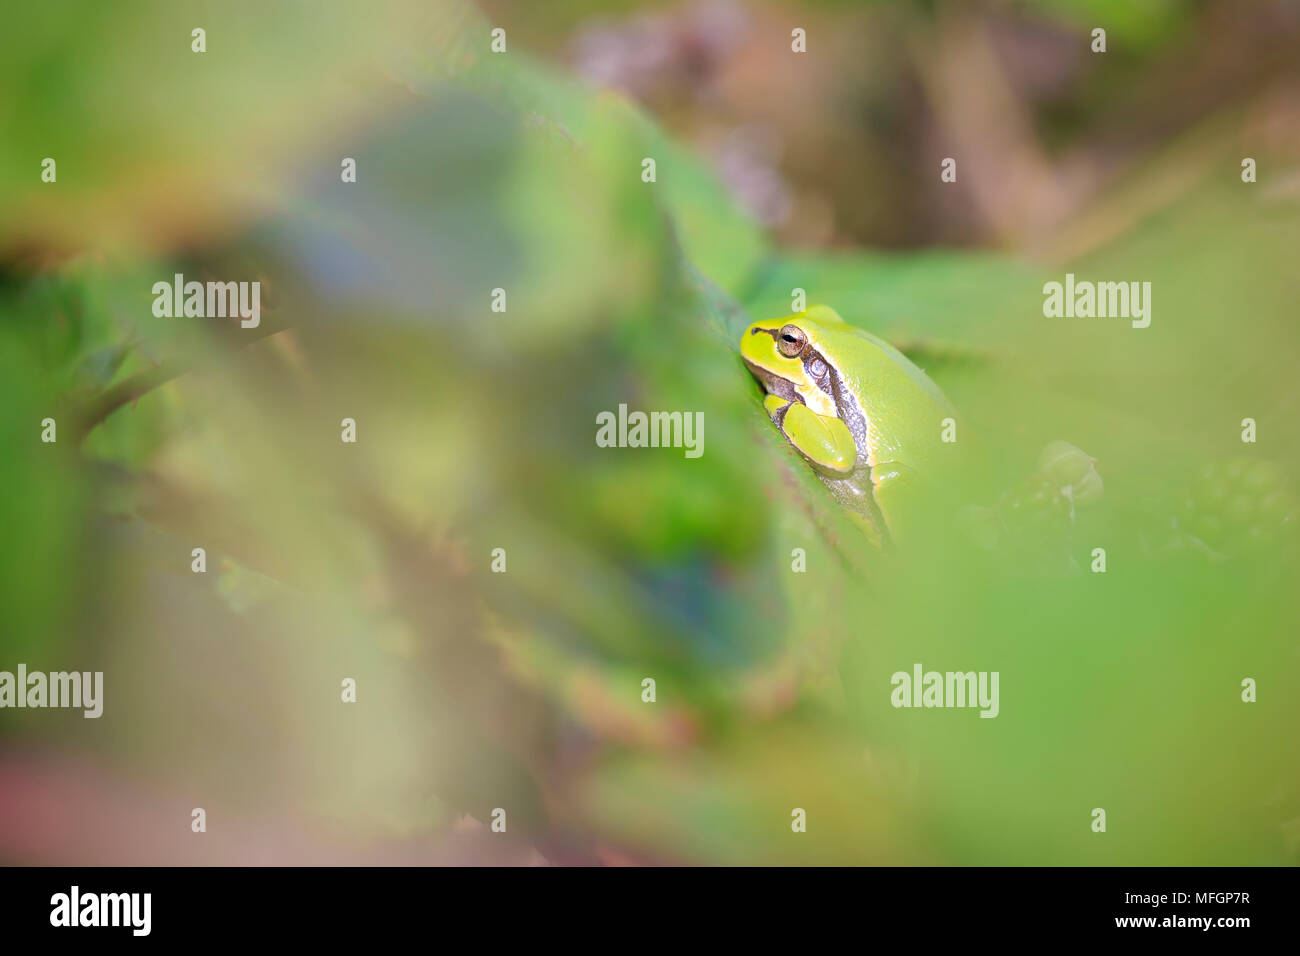 Closeup of a small European tree frog (Hyla arborea or Rana arborea), resting in a blackberry bush heating up in the sun. Stock Photo